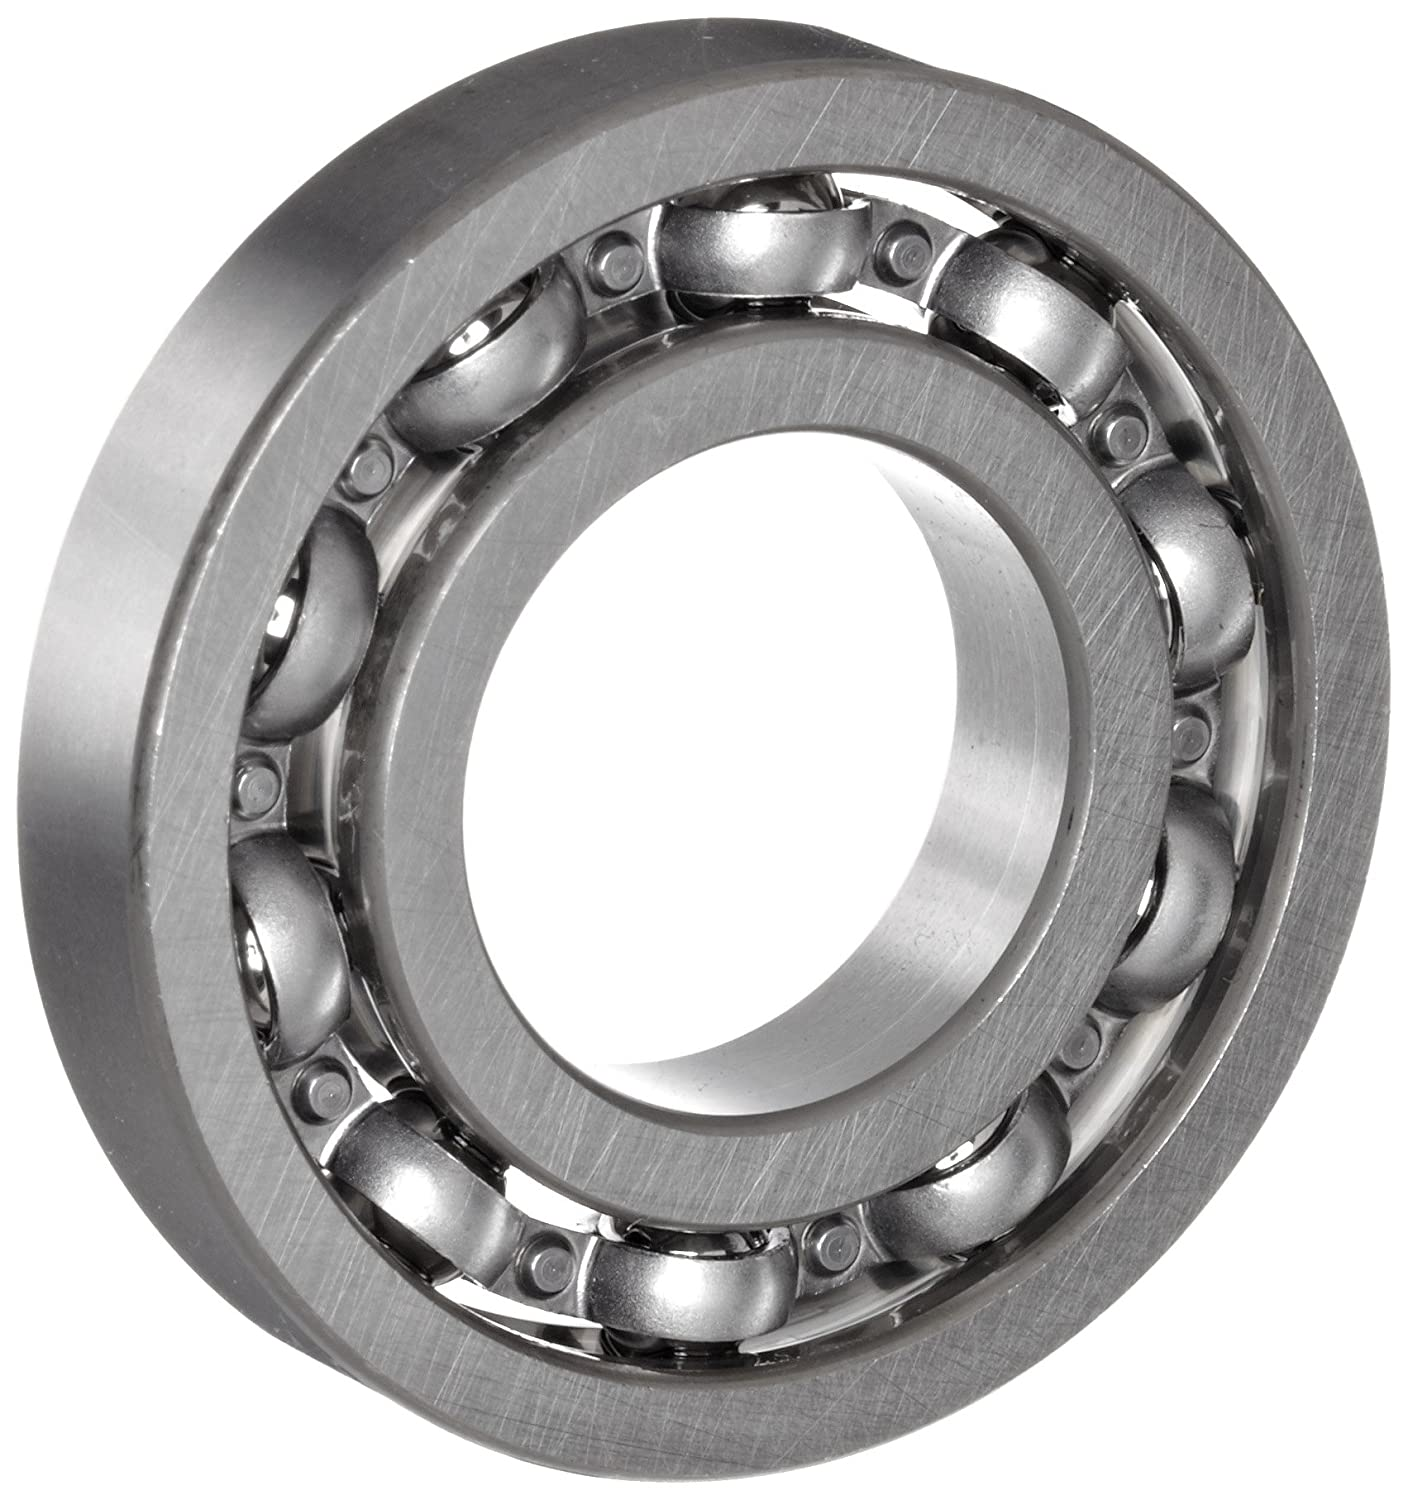 NSK 16018 Deep Groove Ball Bearing, Single Row, Open, Pressed Steel Cage, Normal Clearance, Metric, 90mm Bore, 140mm OD, 16mm Width, 4800rpm Maximum Rotational Speed, 39500N Static Load Capacity, 415000N Dynamic Load Capacity free shipping high quality 15267 full zro2 ceramic deep groove ball bearing 15x26x7mm bike bearing wheel hub bearing